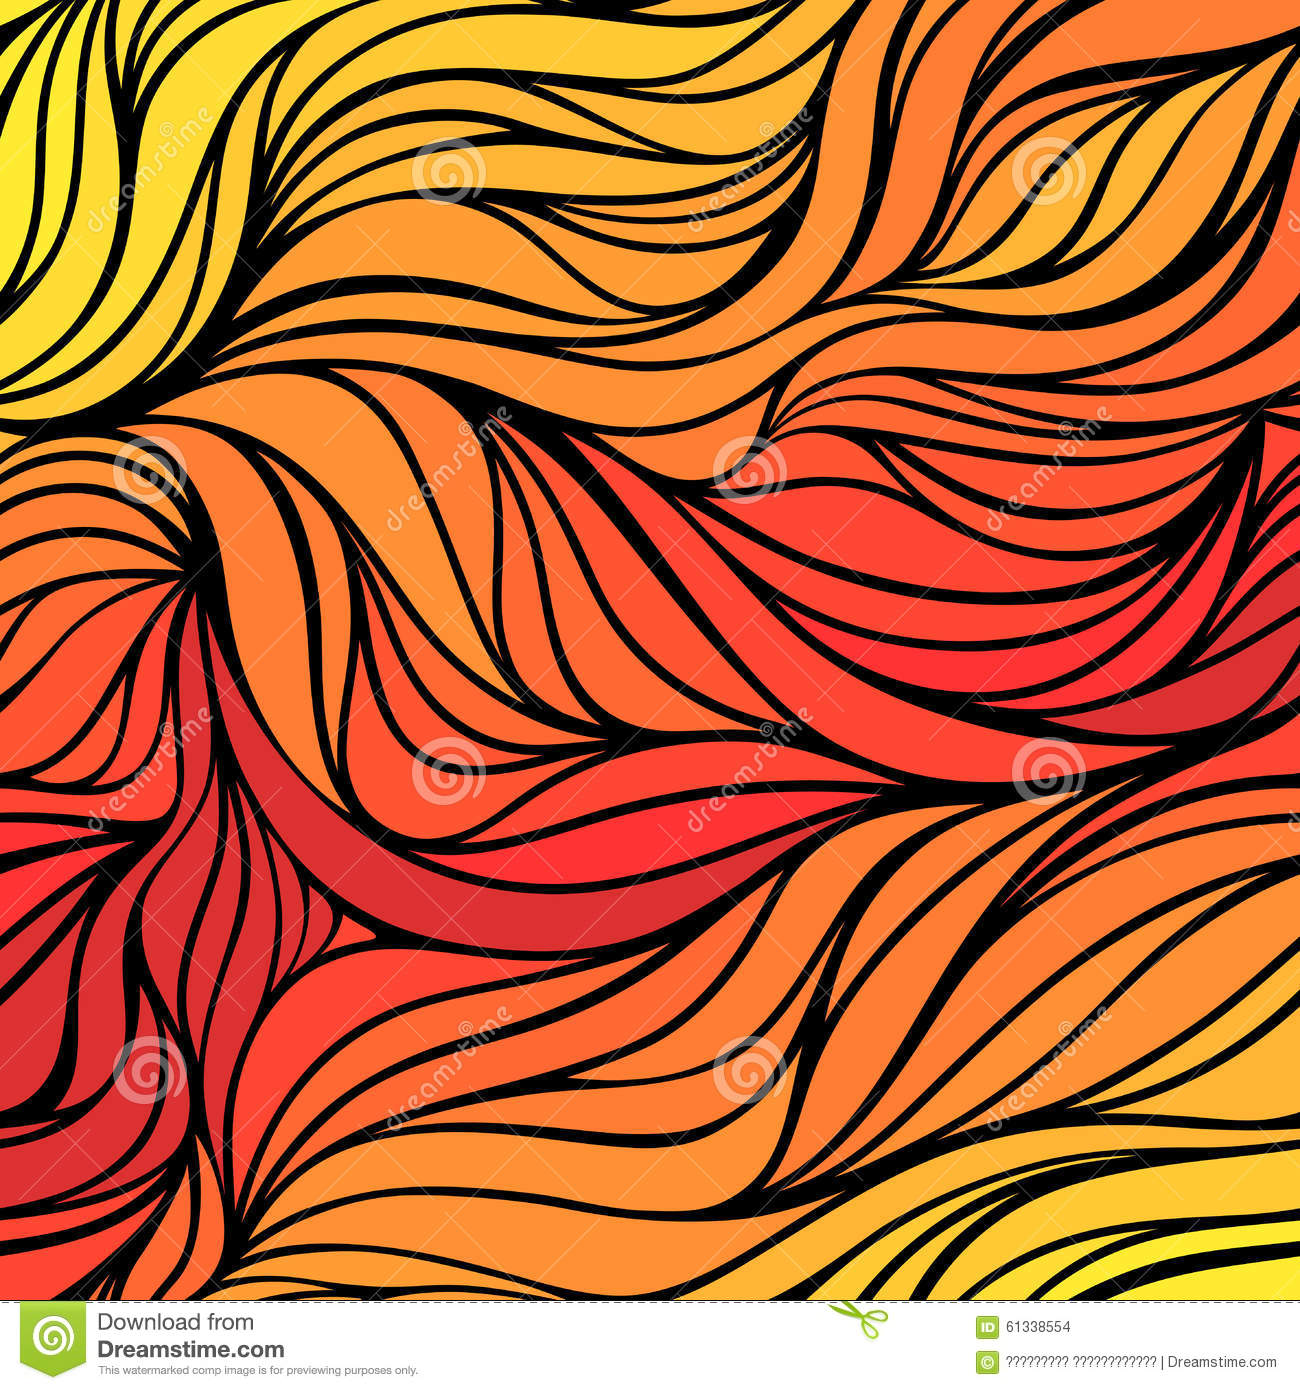 Drawing Lines With Gradients : Vector color hand drawing wave sunny background gradient